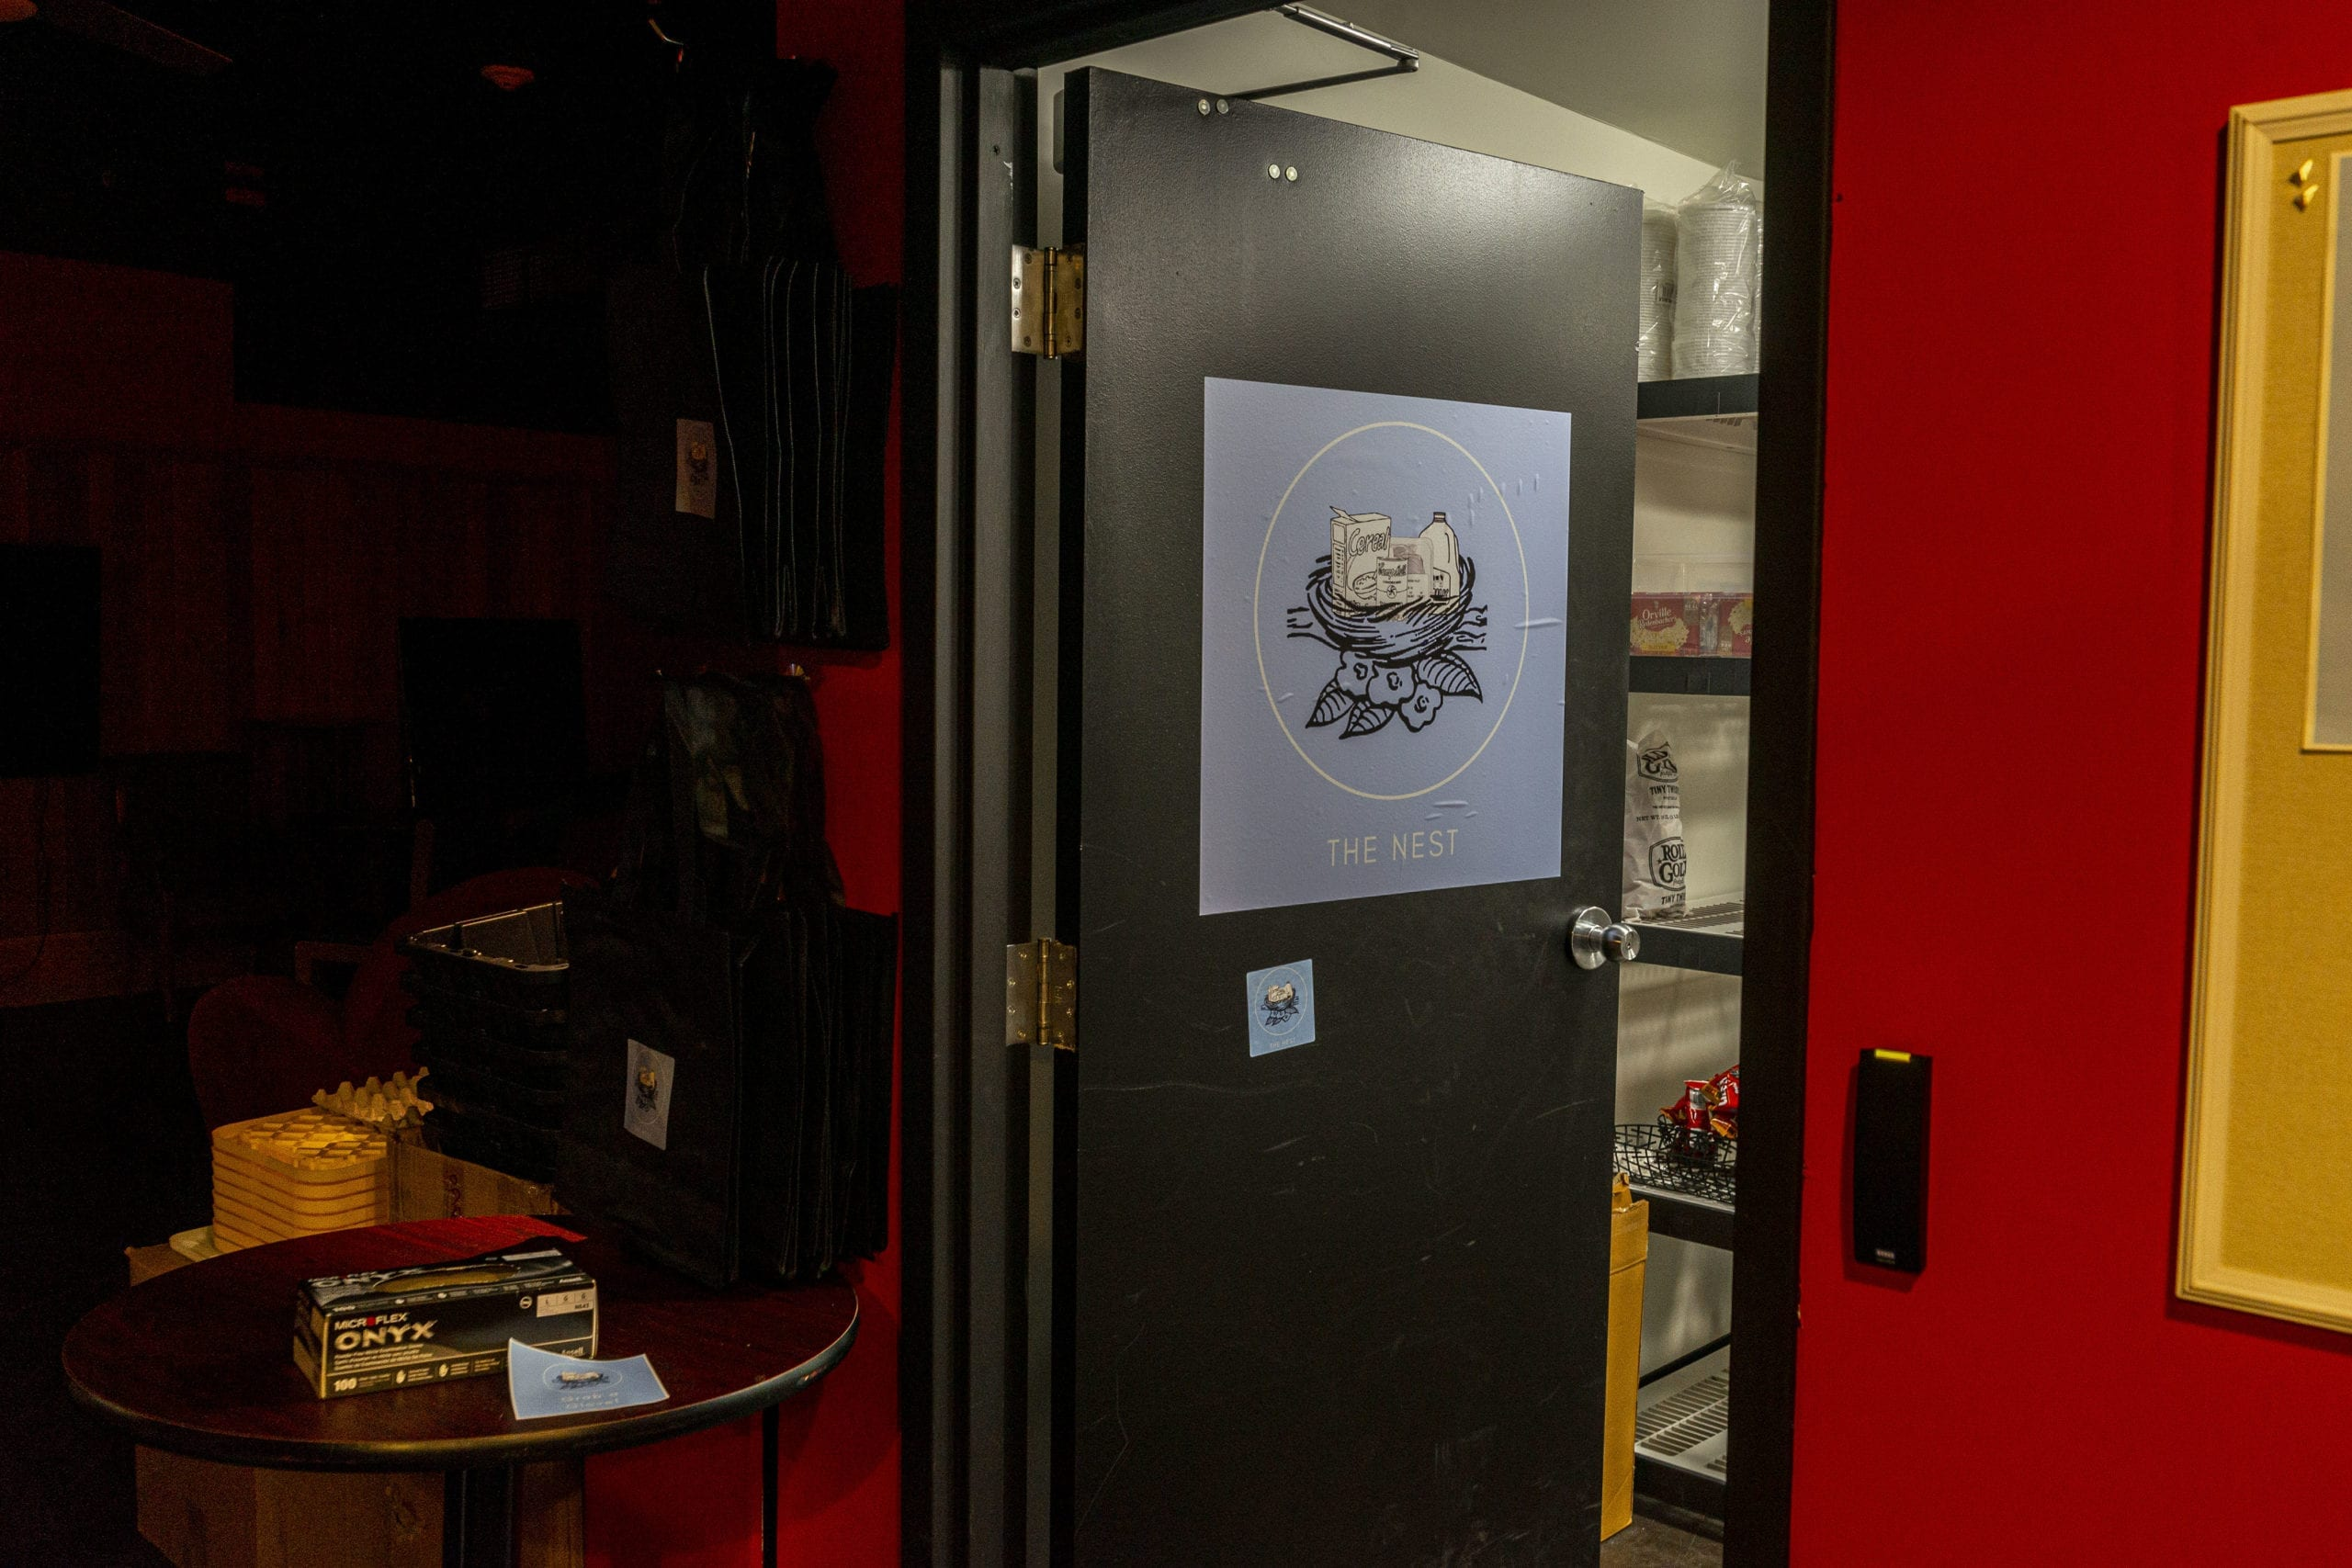 Black door open with the blue nest logo on it